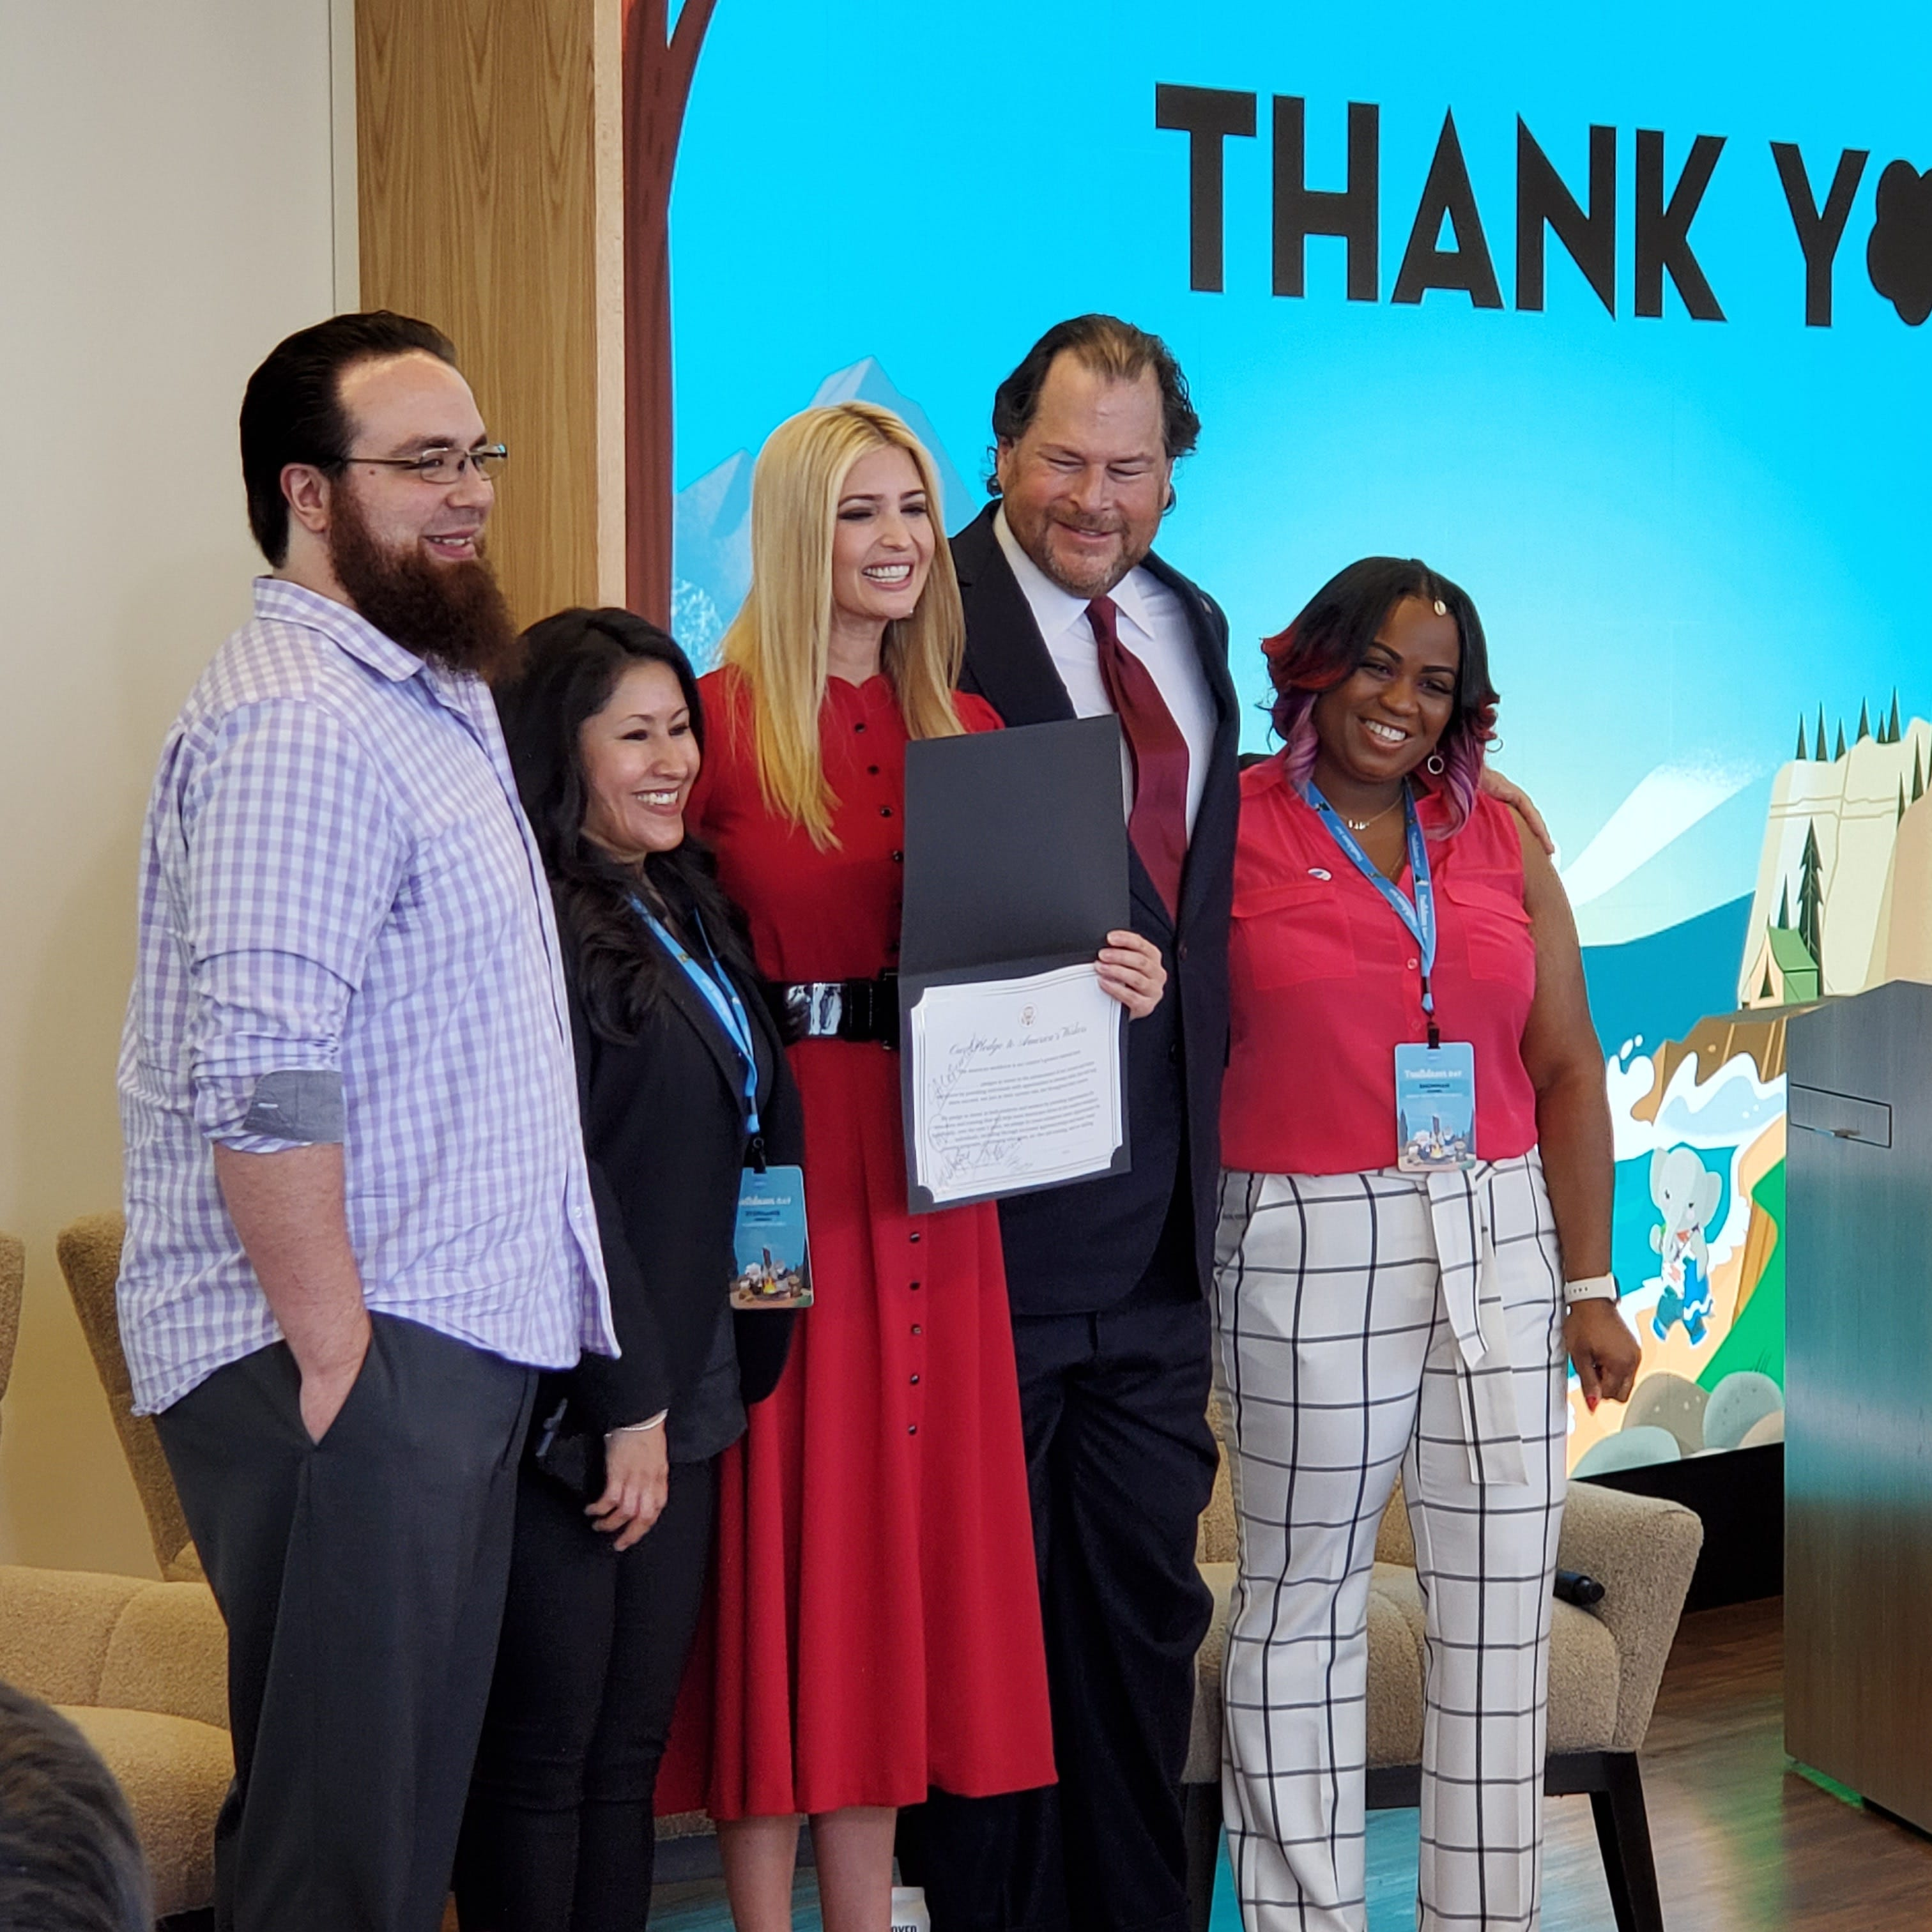 Salesforce CEO Marc Benioff pledges to train 1 million workers during Ivanka Trump visit